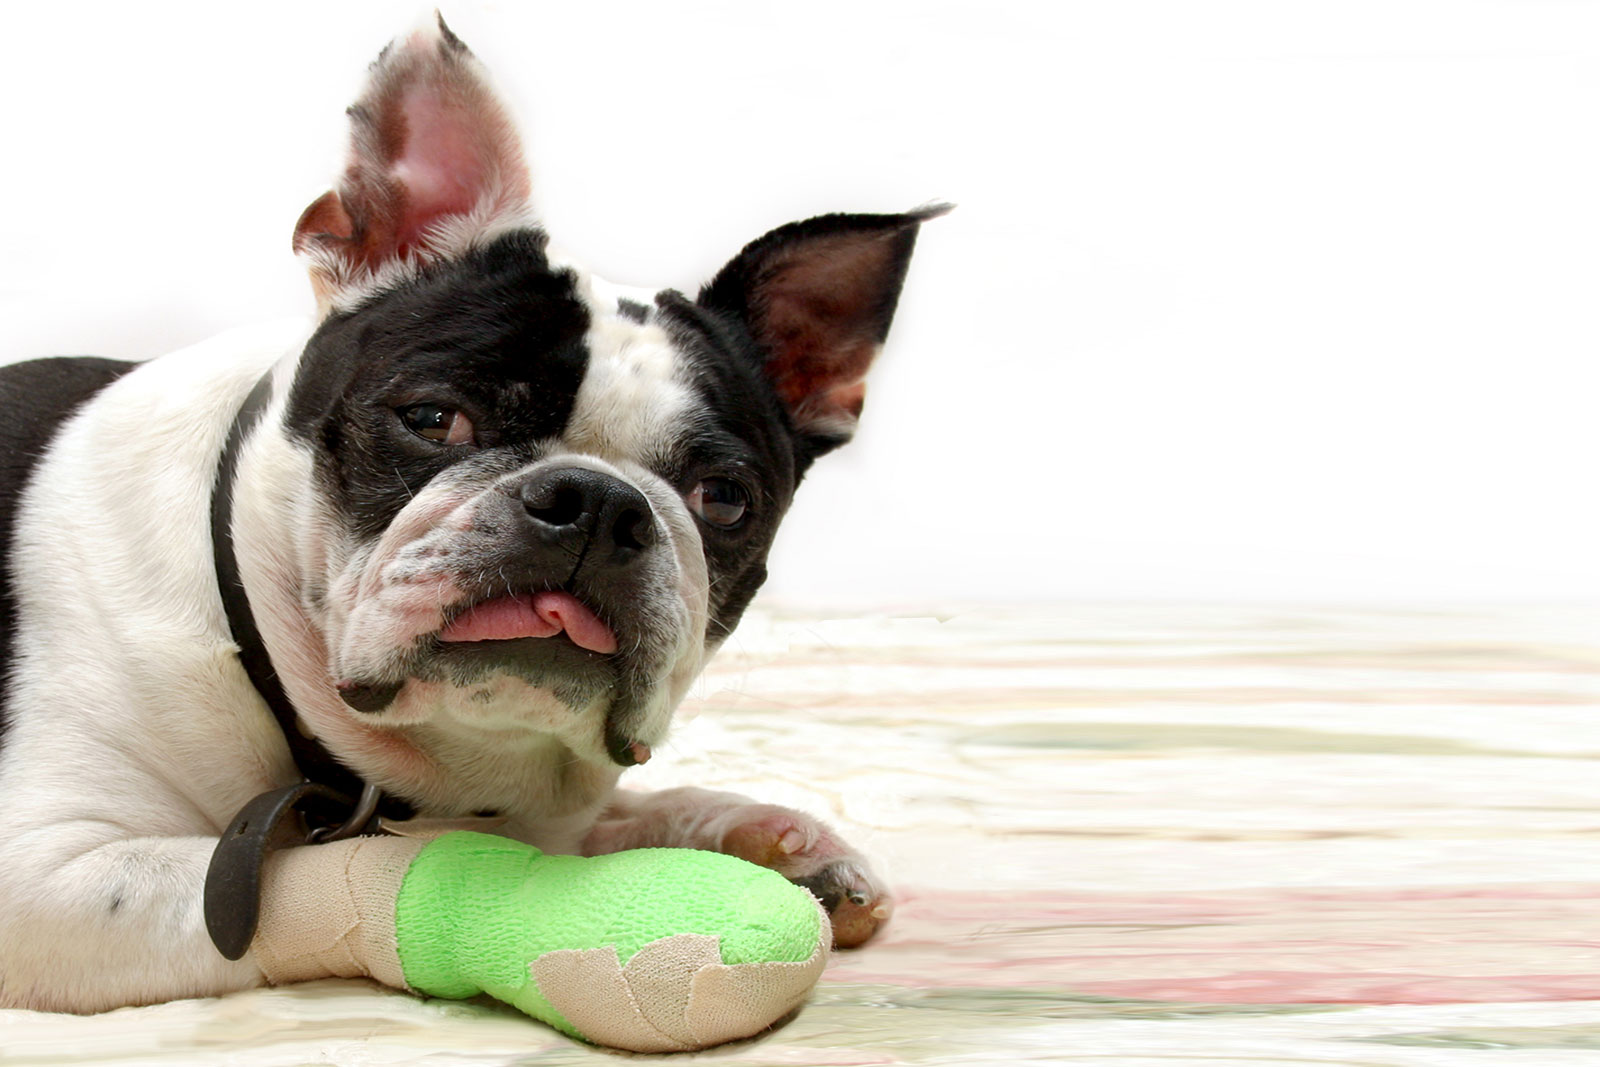 How to Keep Bandages on a Dog | LoveToKnow